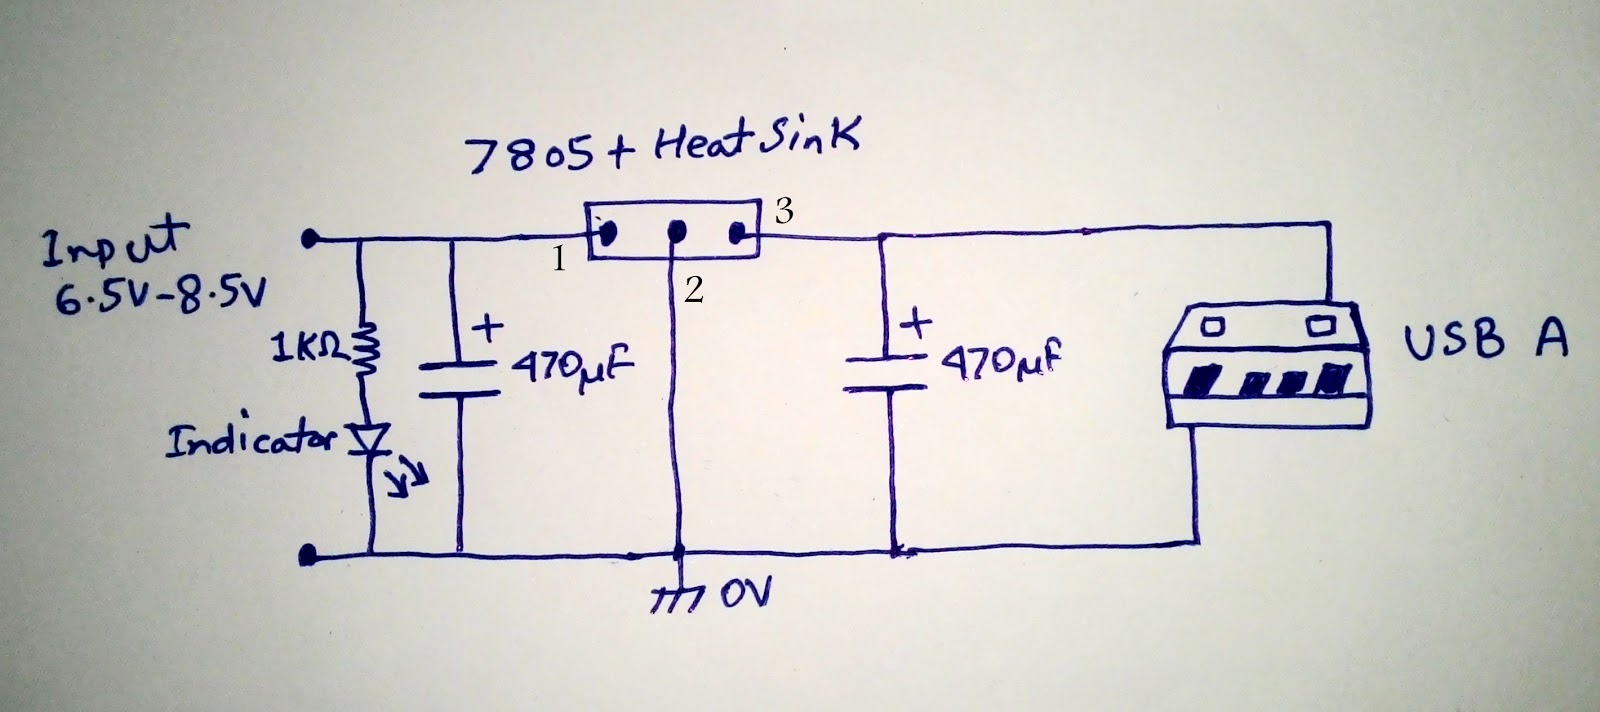 Scavengers Blog Diy Powerbank 2014 7805 Circuit Diagram This Probably Is The Simplest That Will Work Just Fine But Problem Current Output Limited To 1a And Chip Get A Bit Hot